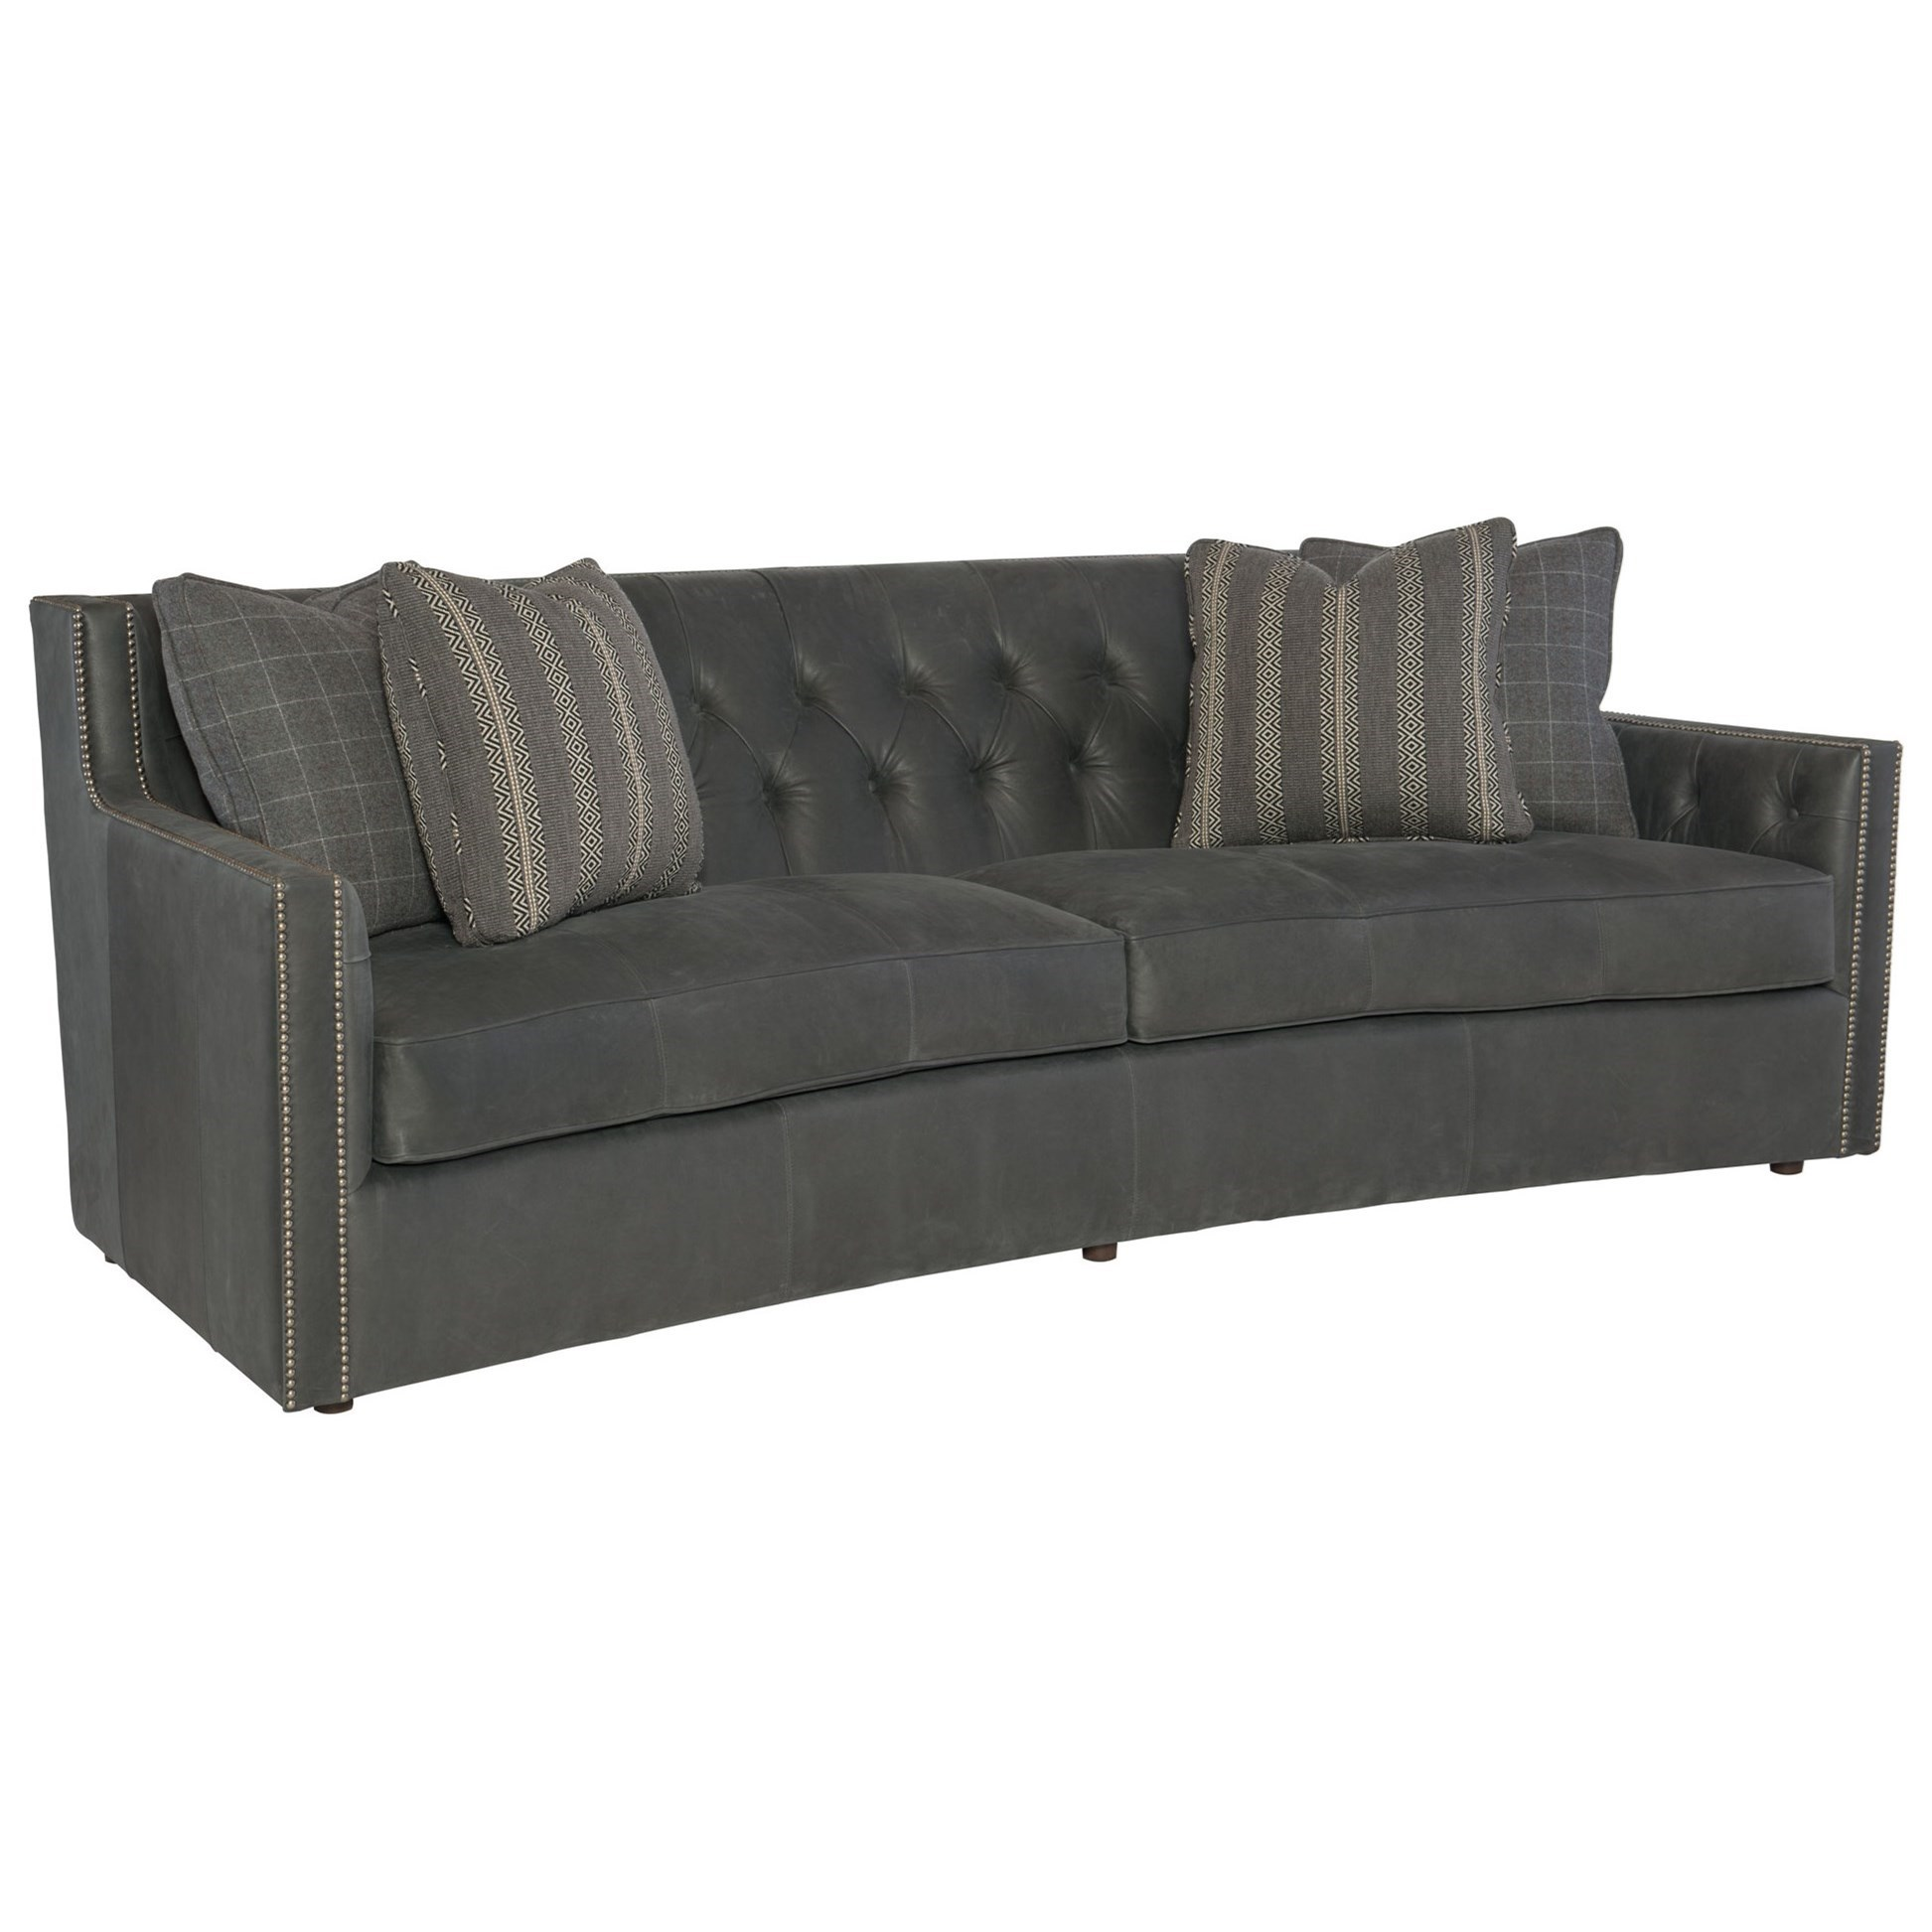 Genial Bernhardt Candace Sofa With Transitional Elegance